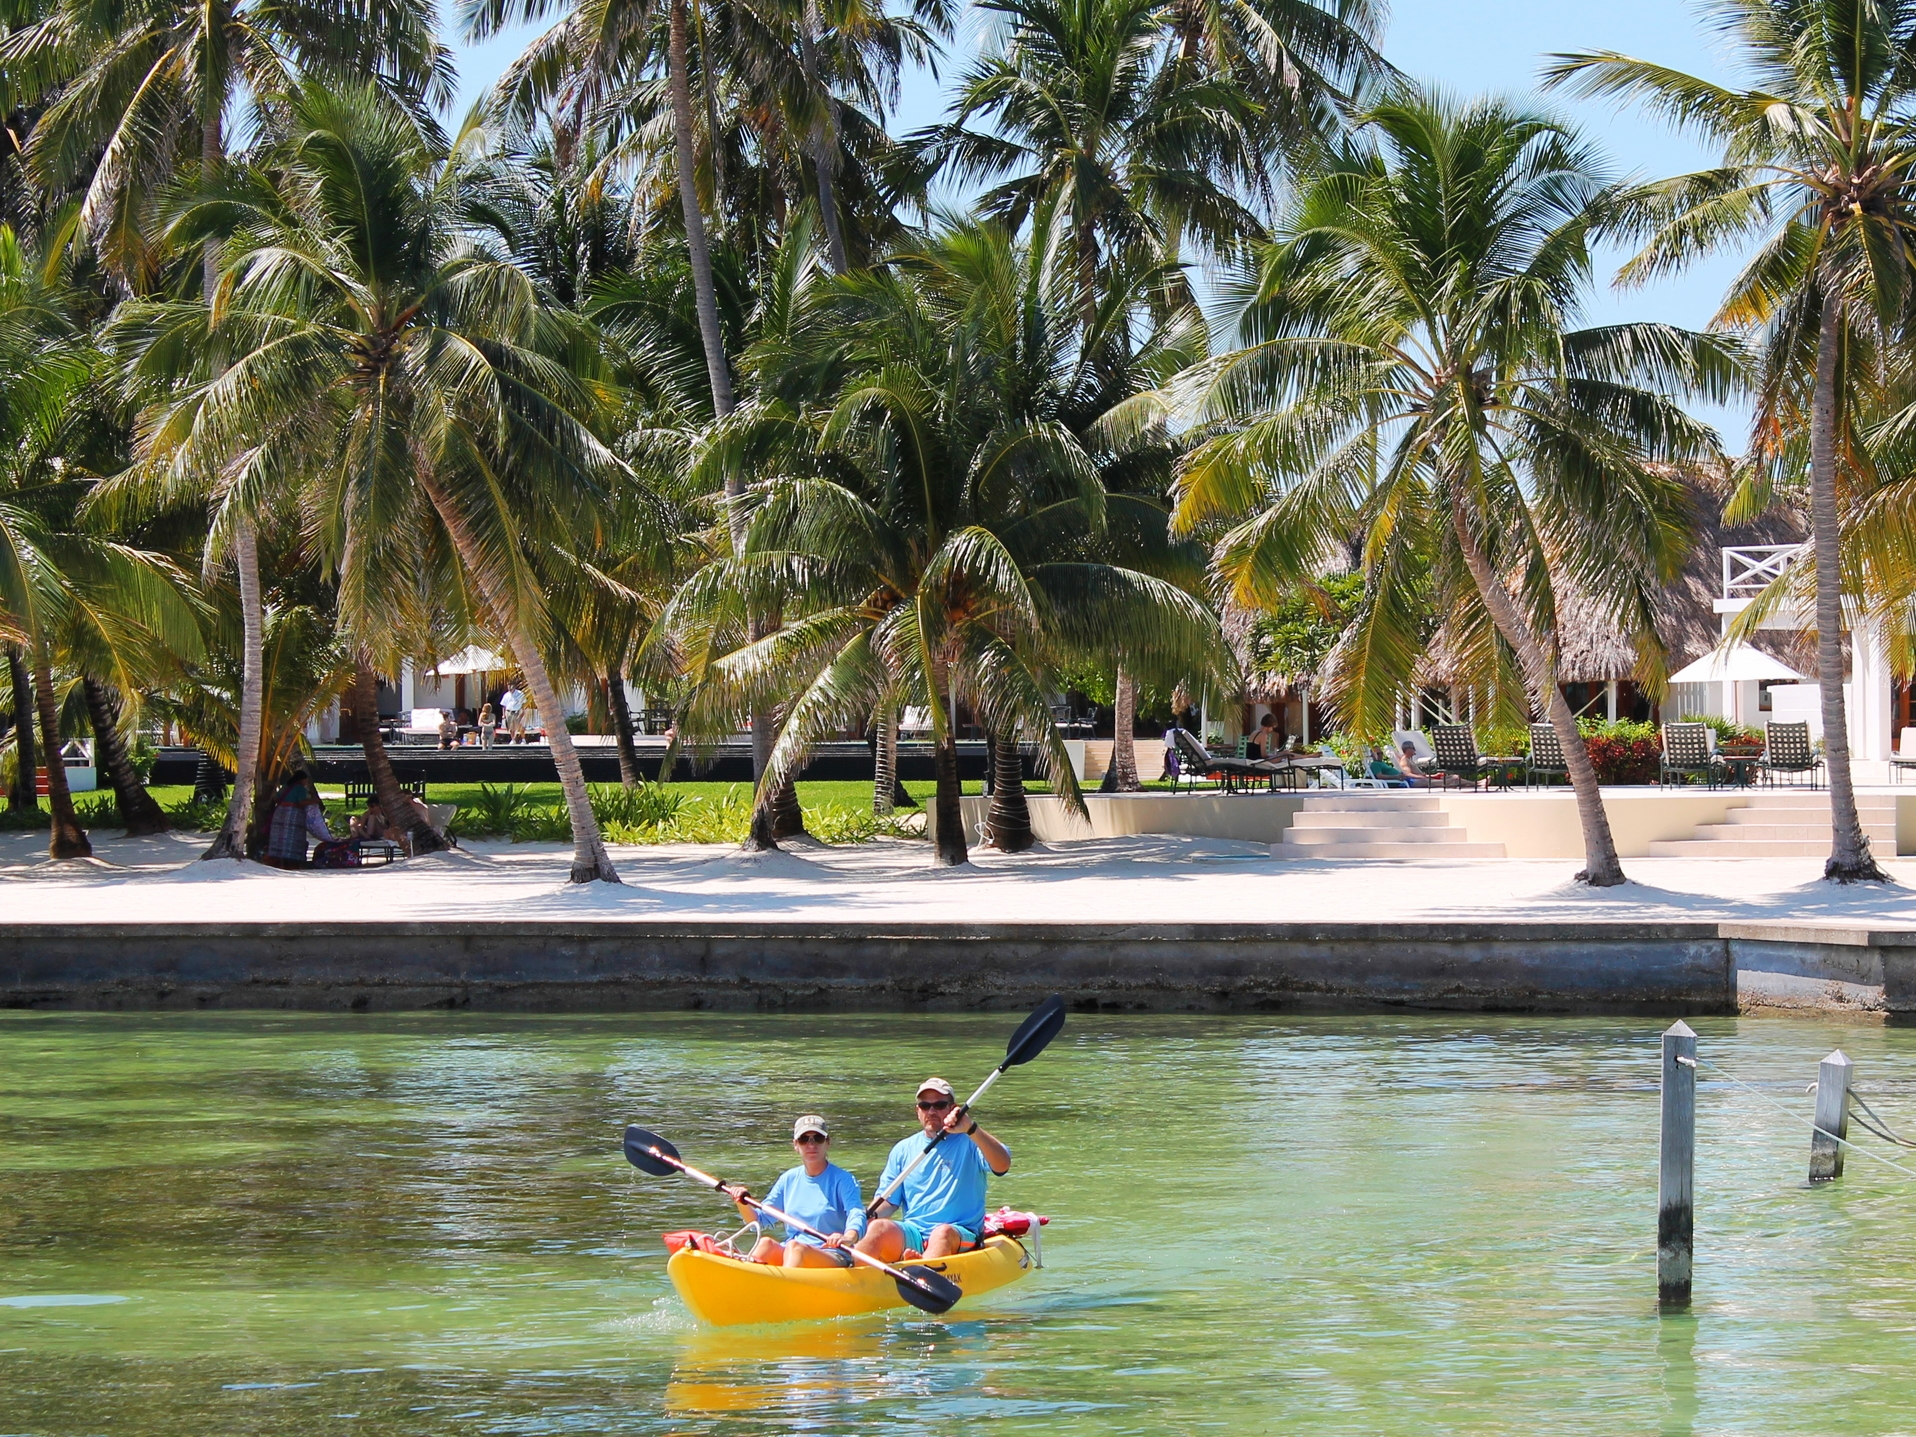 Many resorts offer complimentary use of sea kayaks